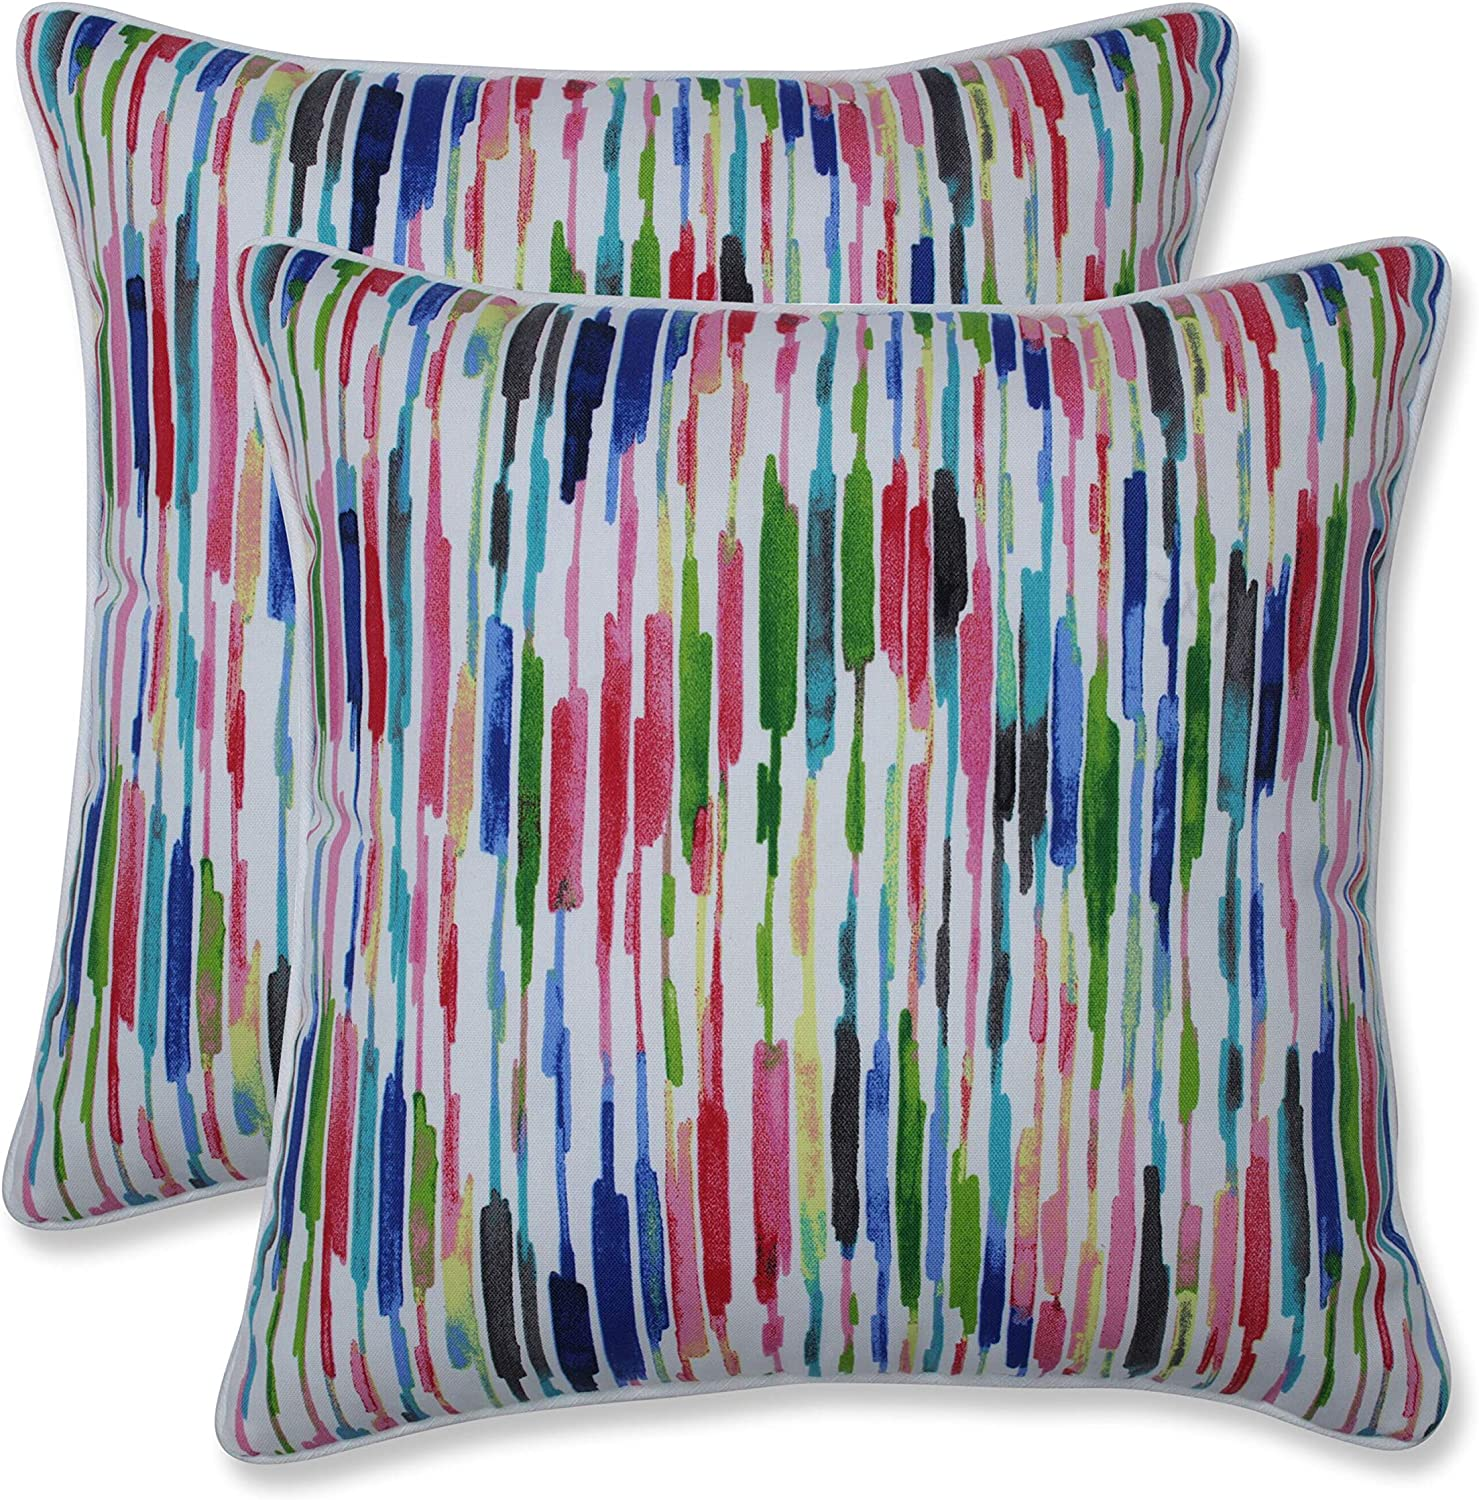 Amazon Com Pillow Perfect Outdoor Indoor Drizzle Summer Throw Pillows 16 5 X 16 5 Pink 2 Pack Home Kitchen